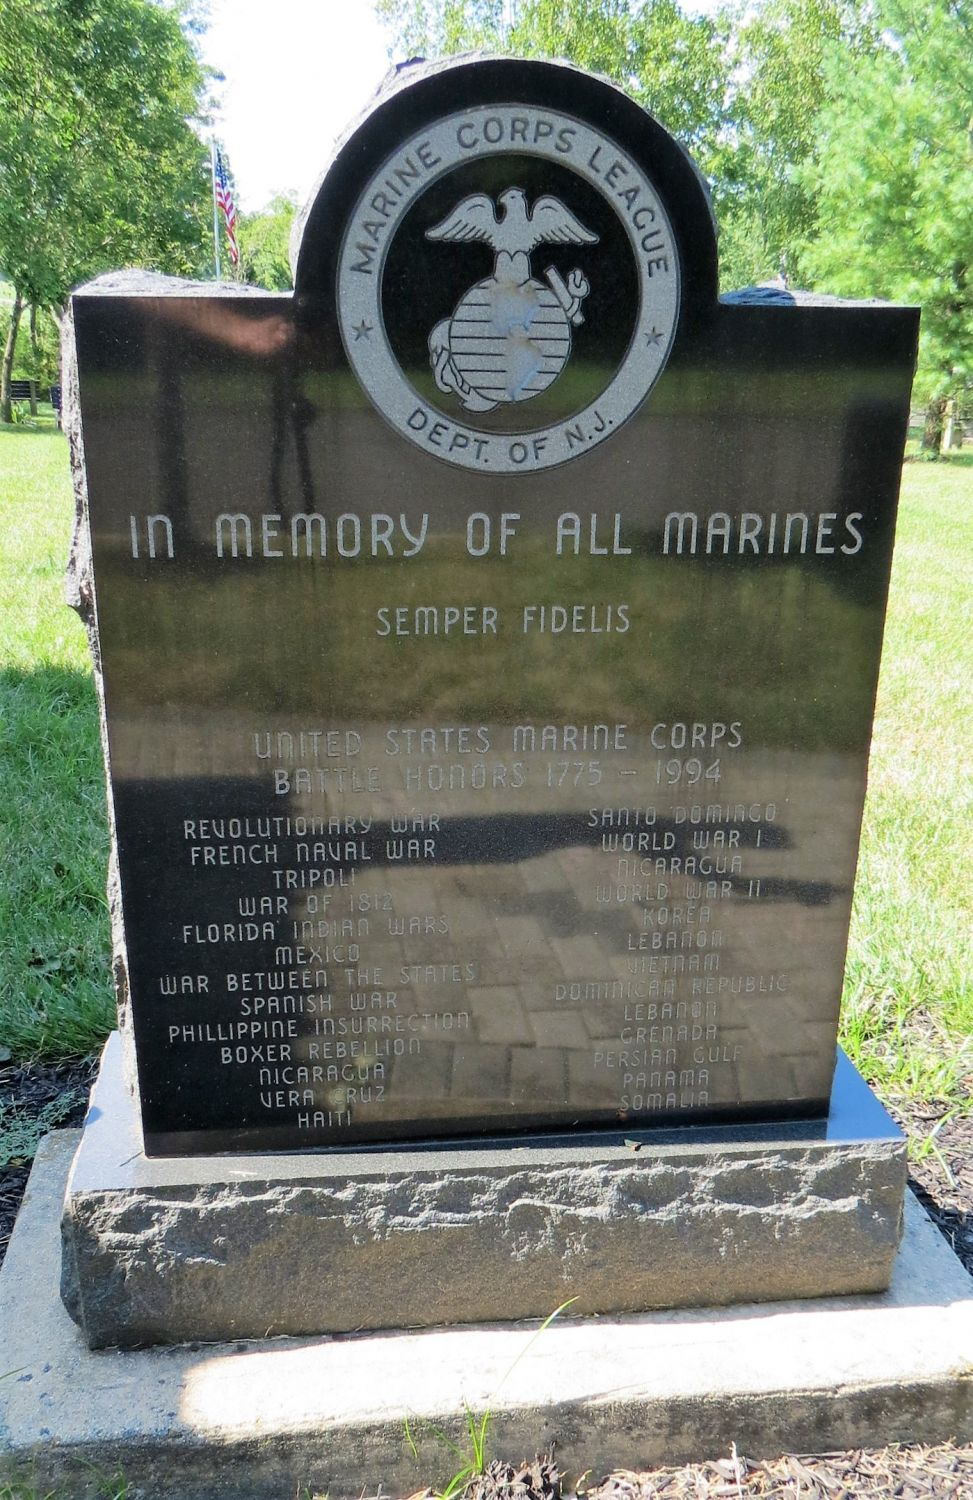 New Jersey Marine Corps League Memorial